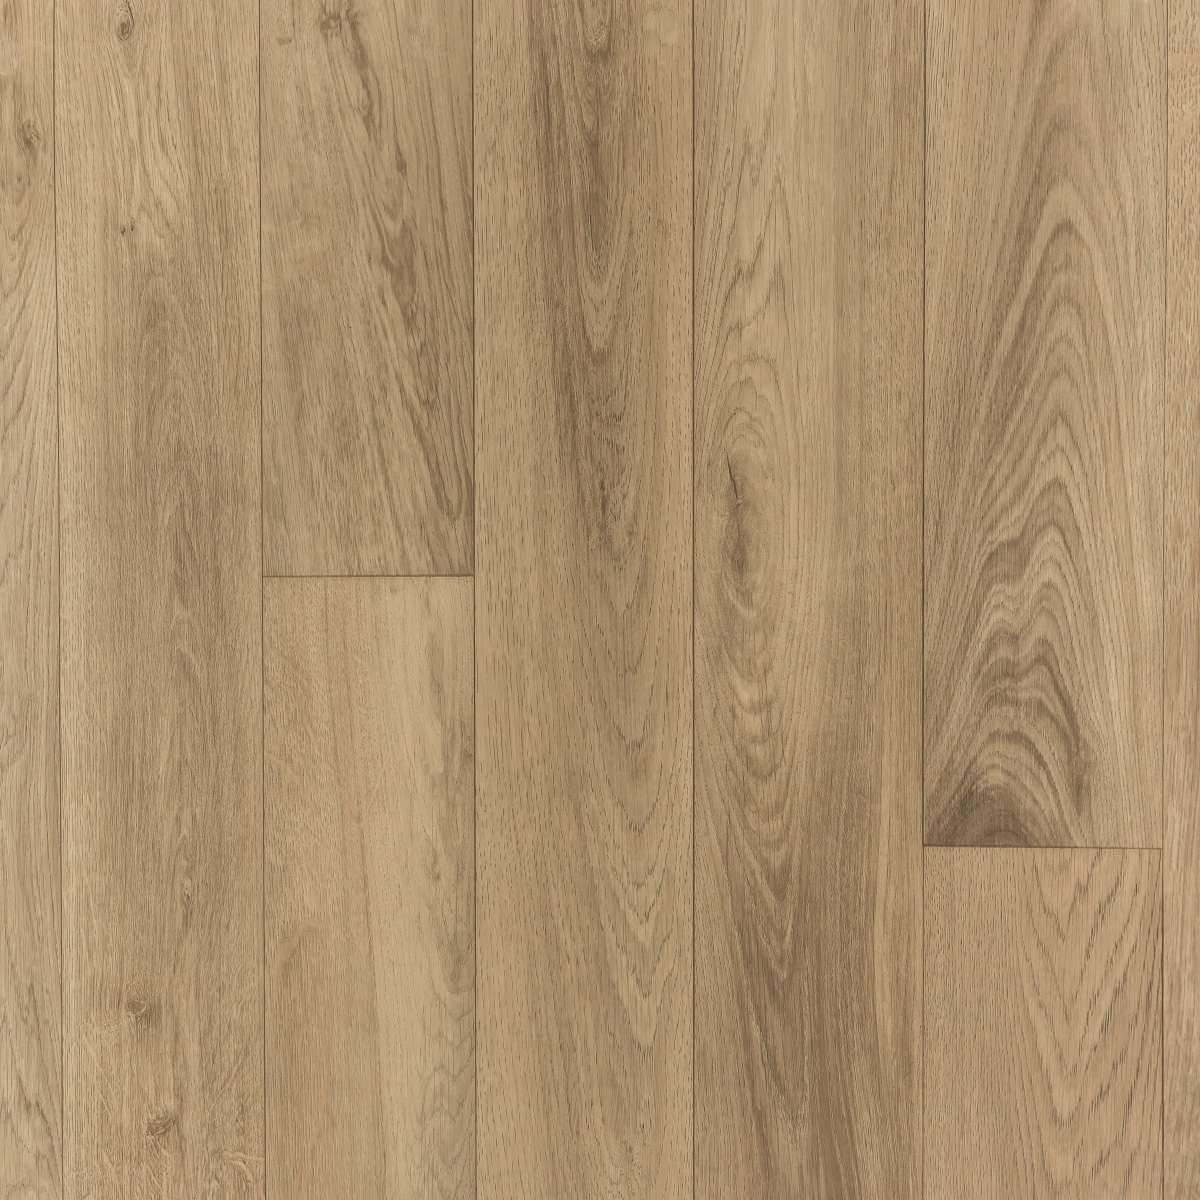 Noblesse French Oak Beige 082